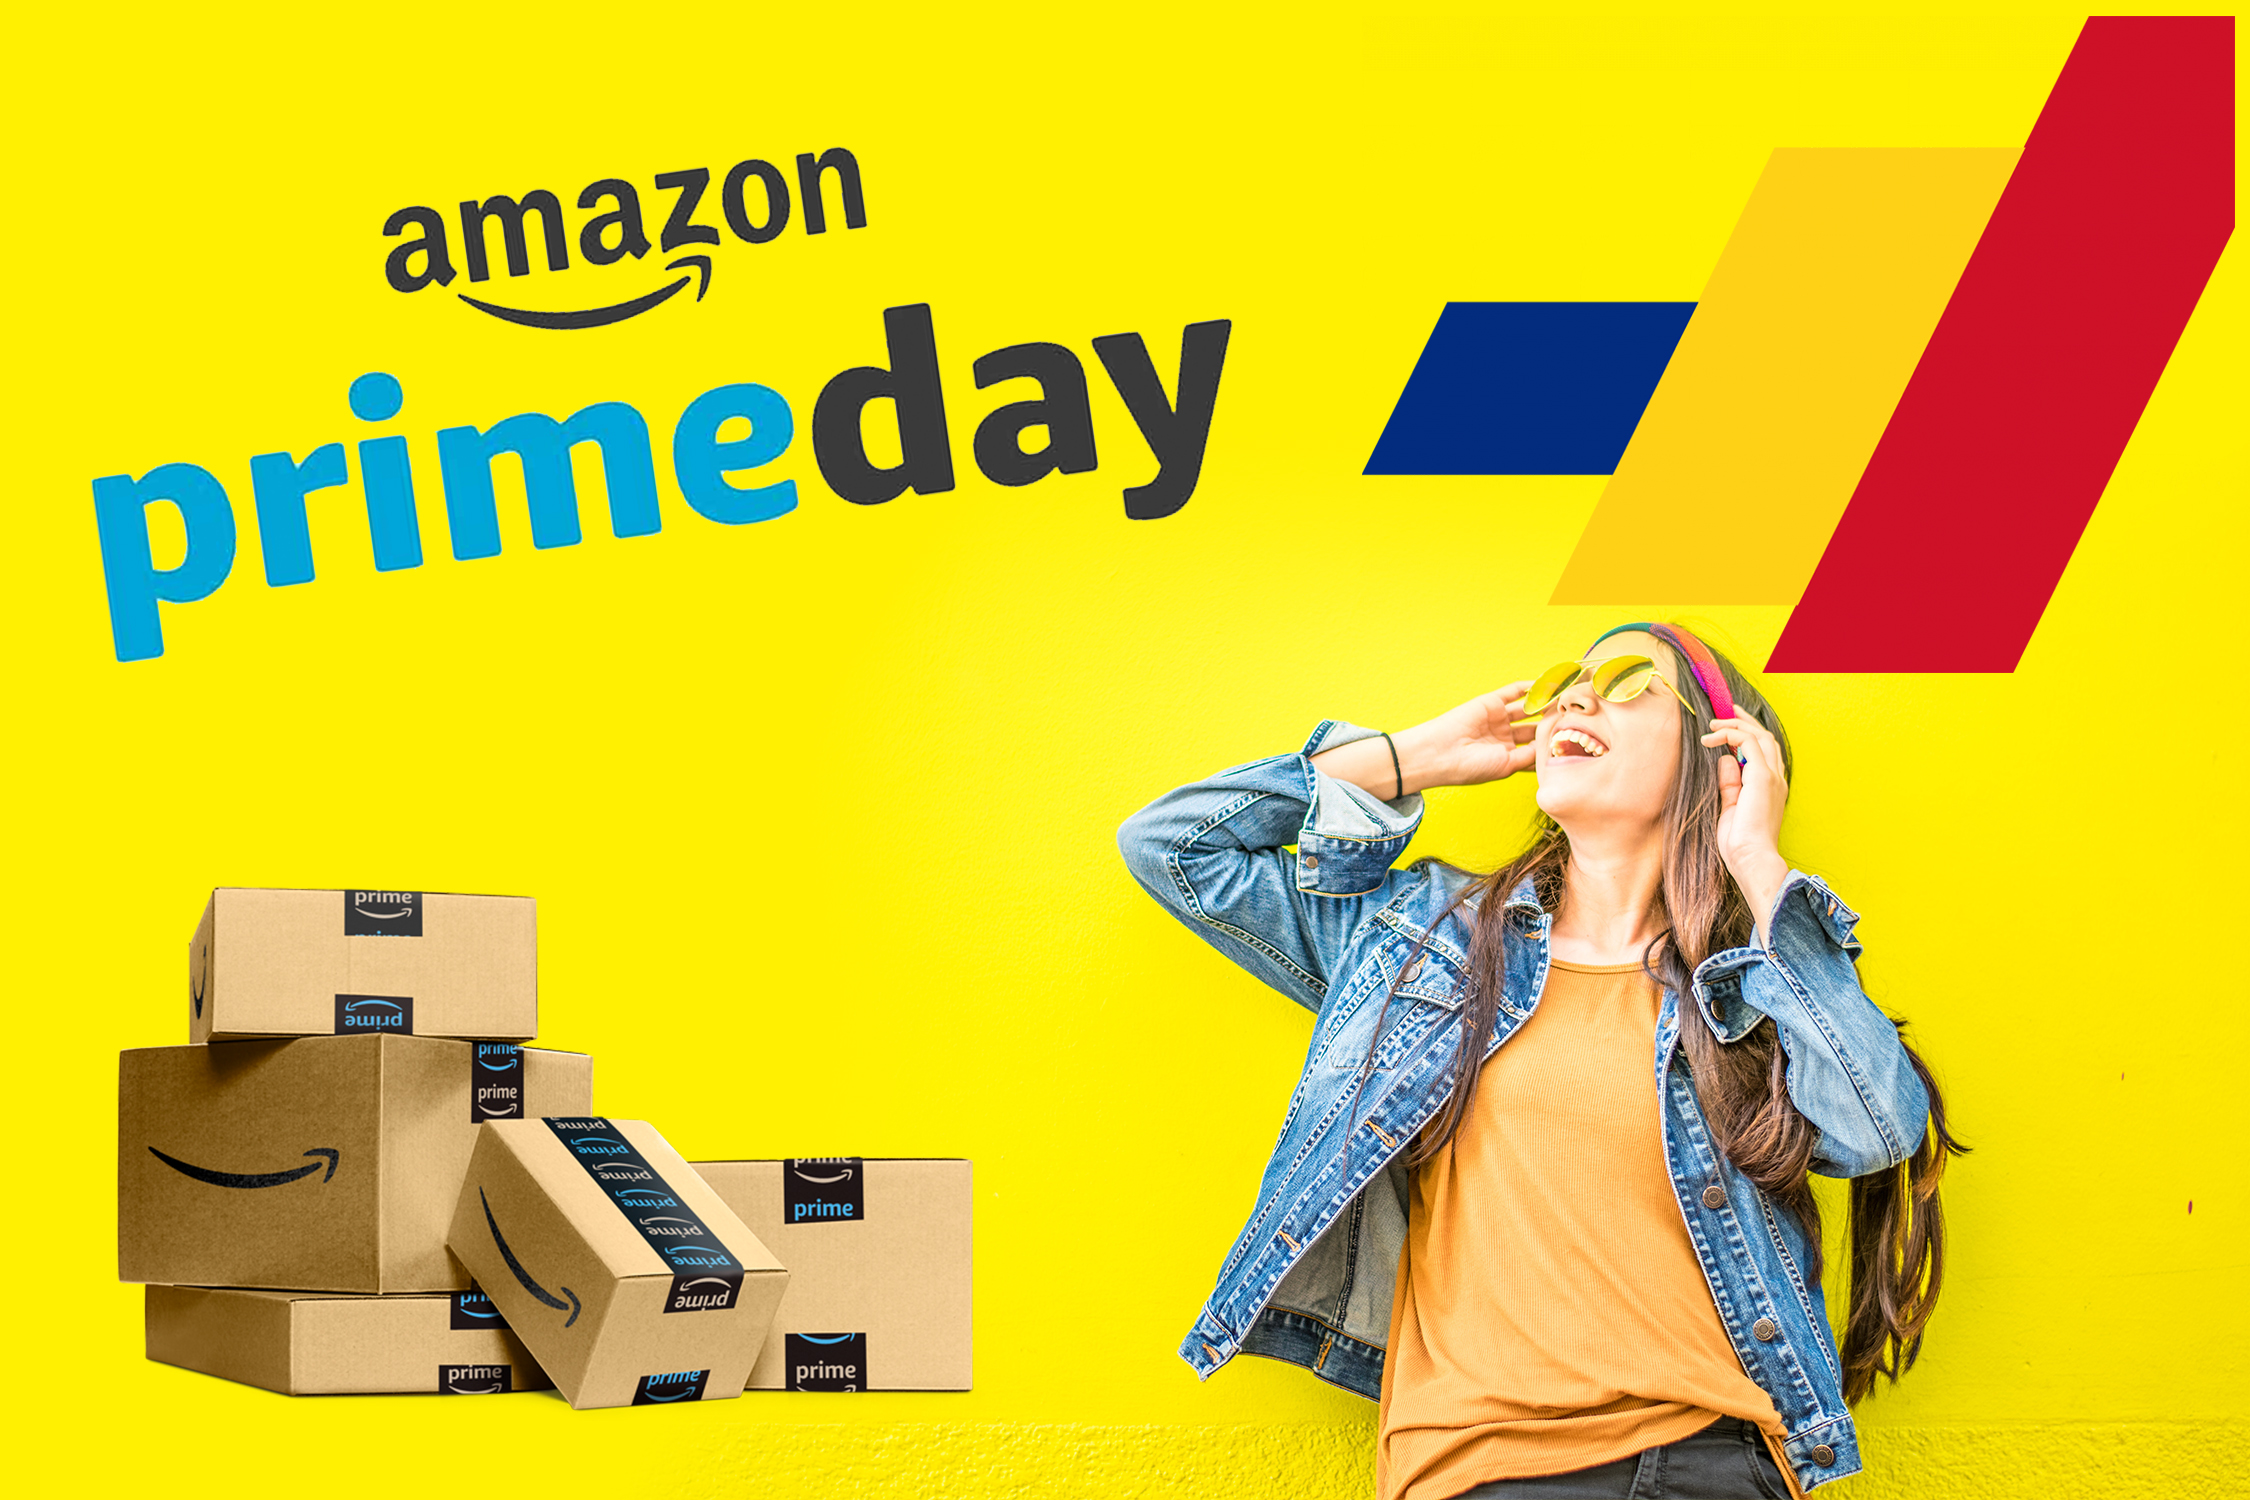 Amazon Prime Day 2020 Marked the Two Biggest Days Ever for Small & Medium Businesses in Amazon's Stores Worldwide